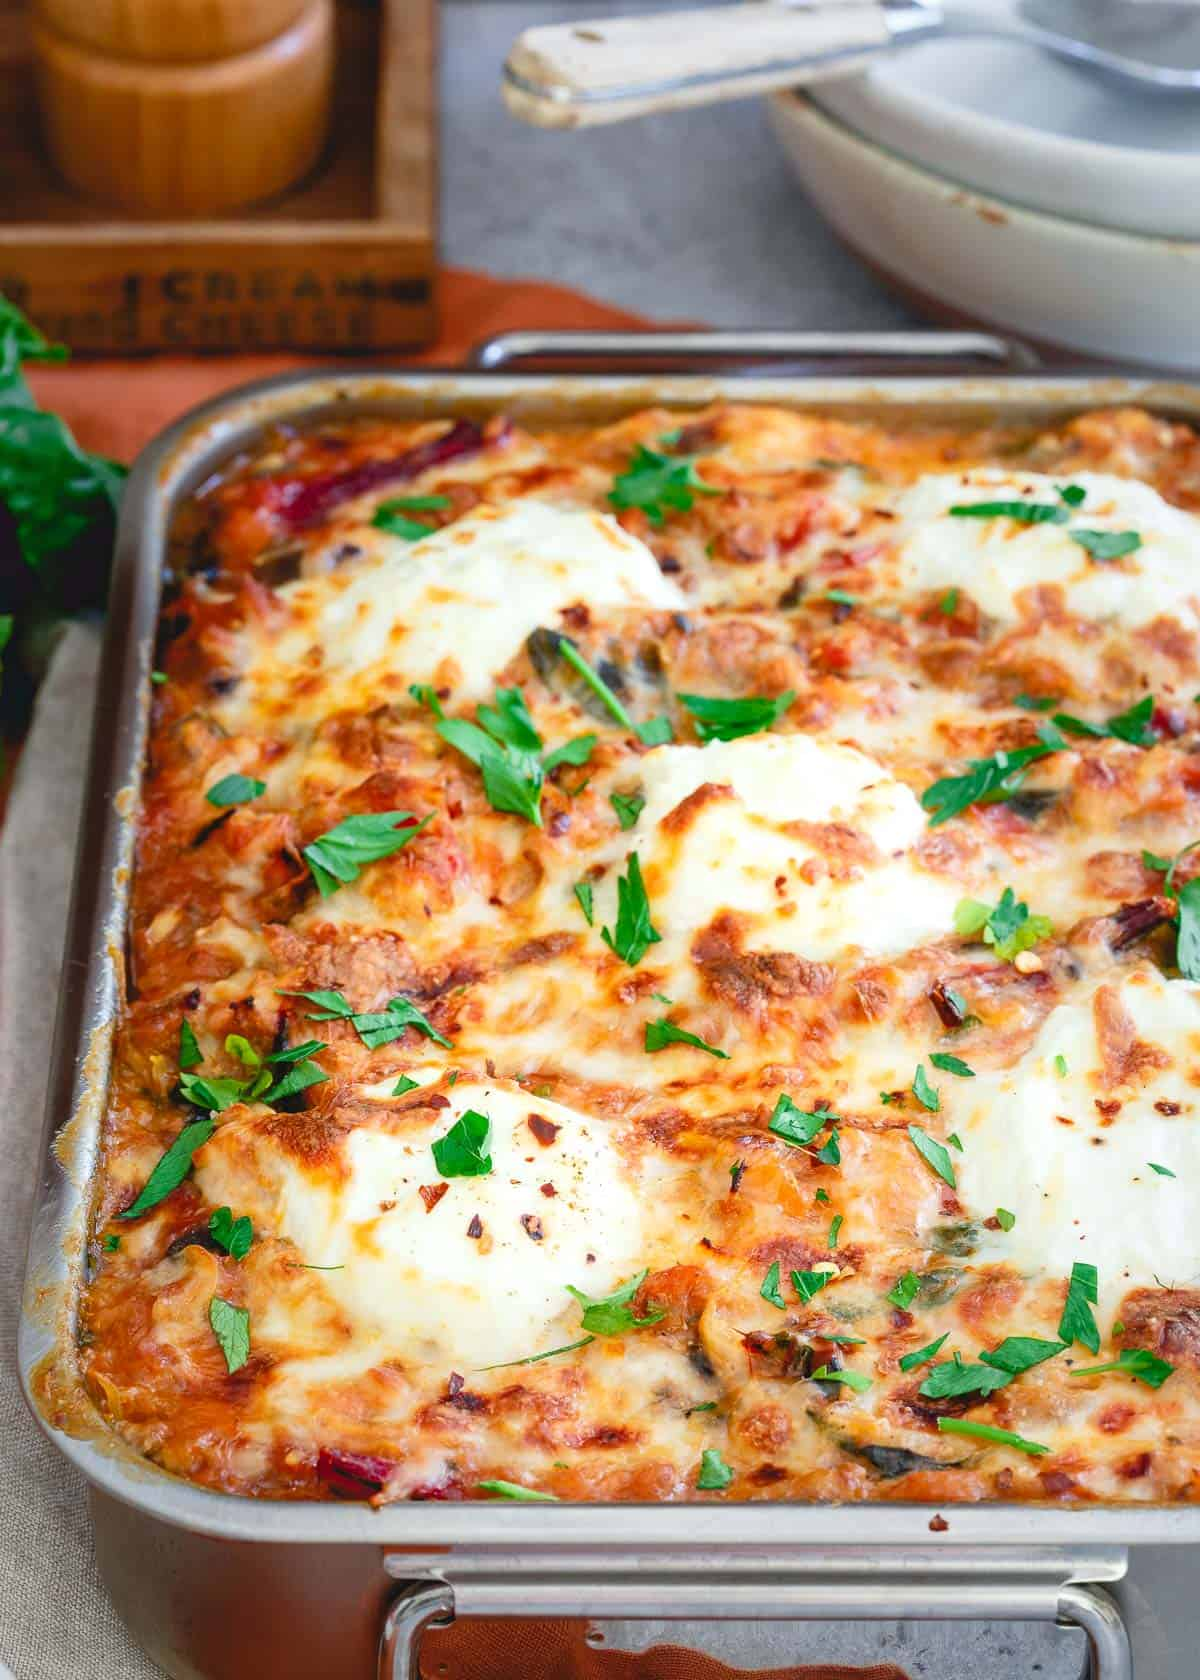 Put a healthier spin on your baked ziti by using spaghetti squash as the noodles!